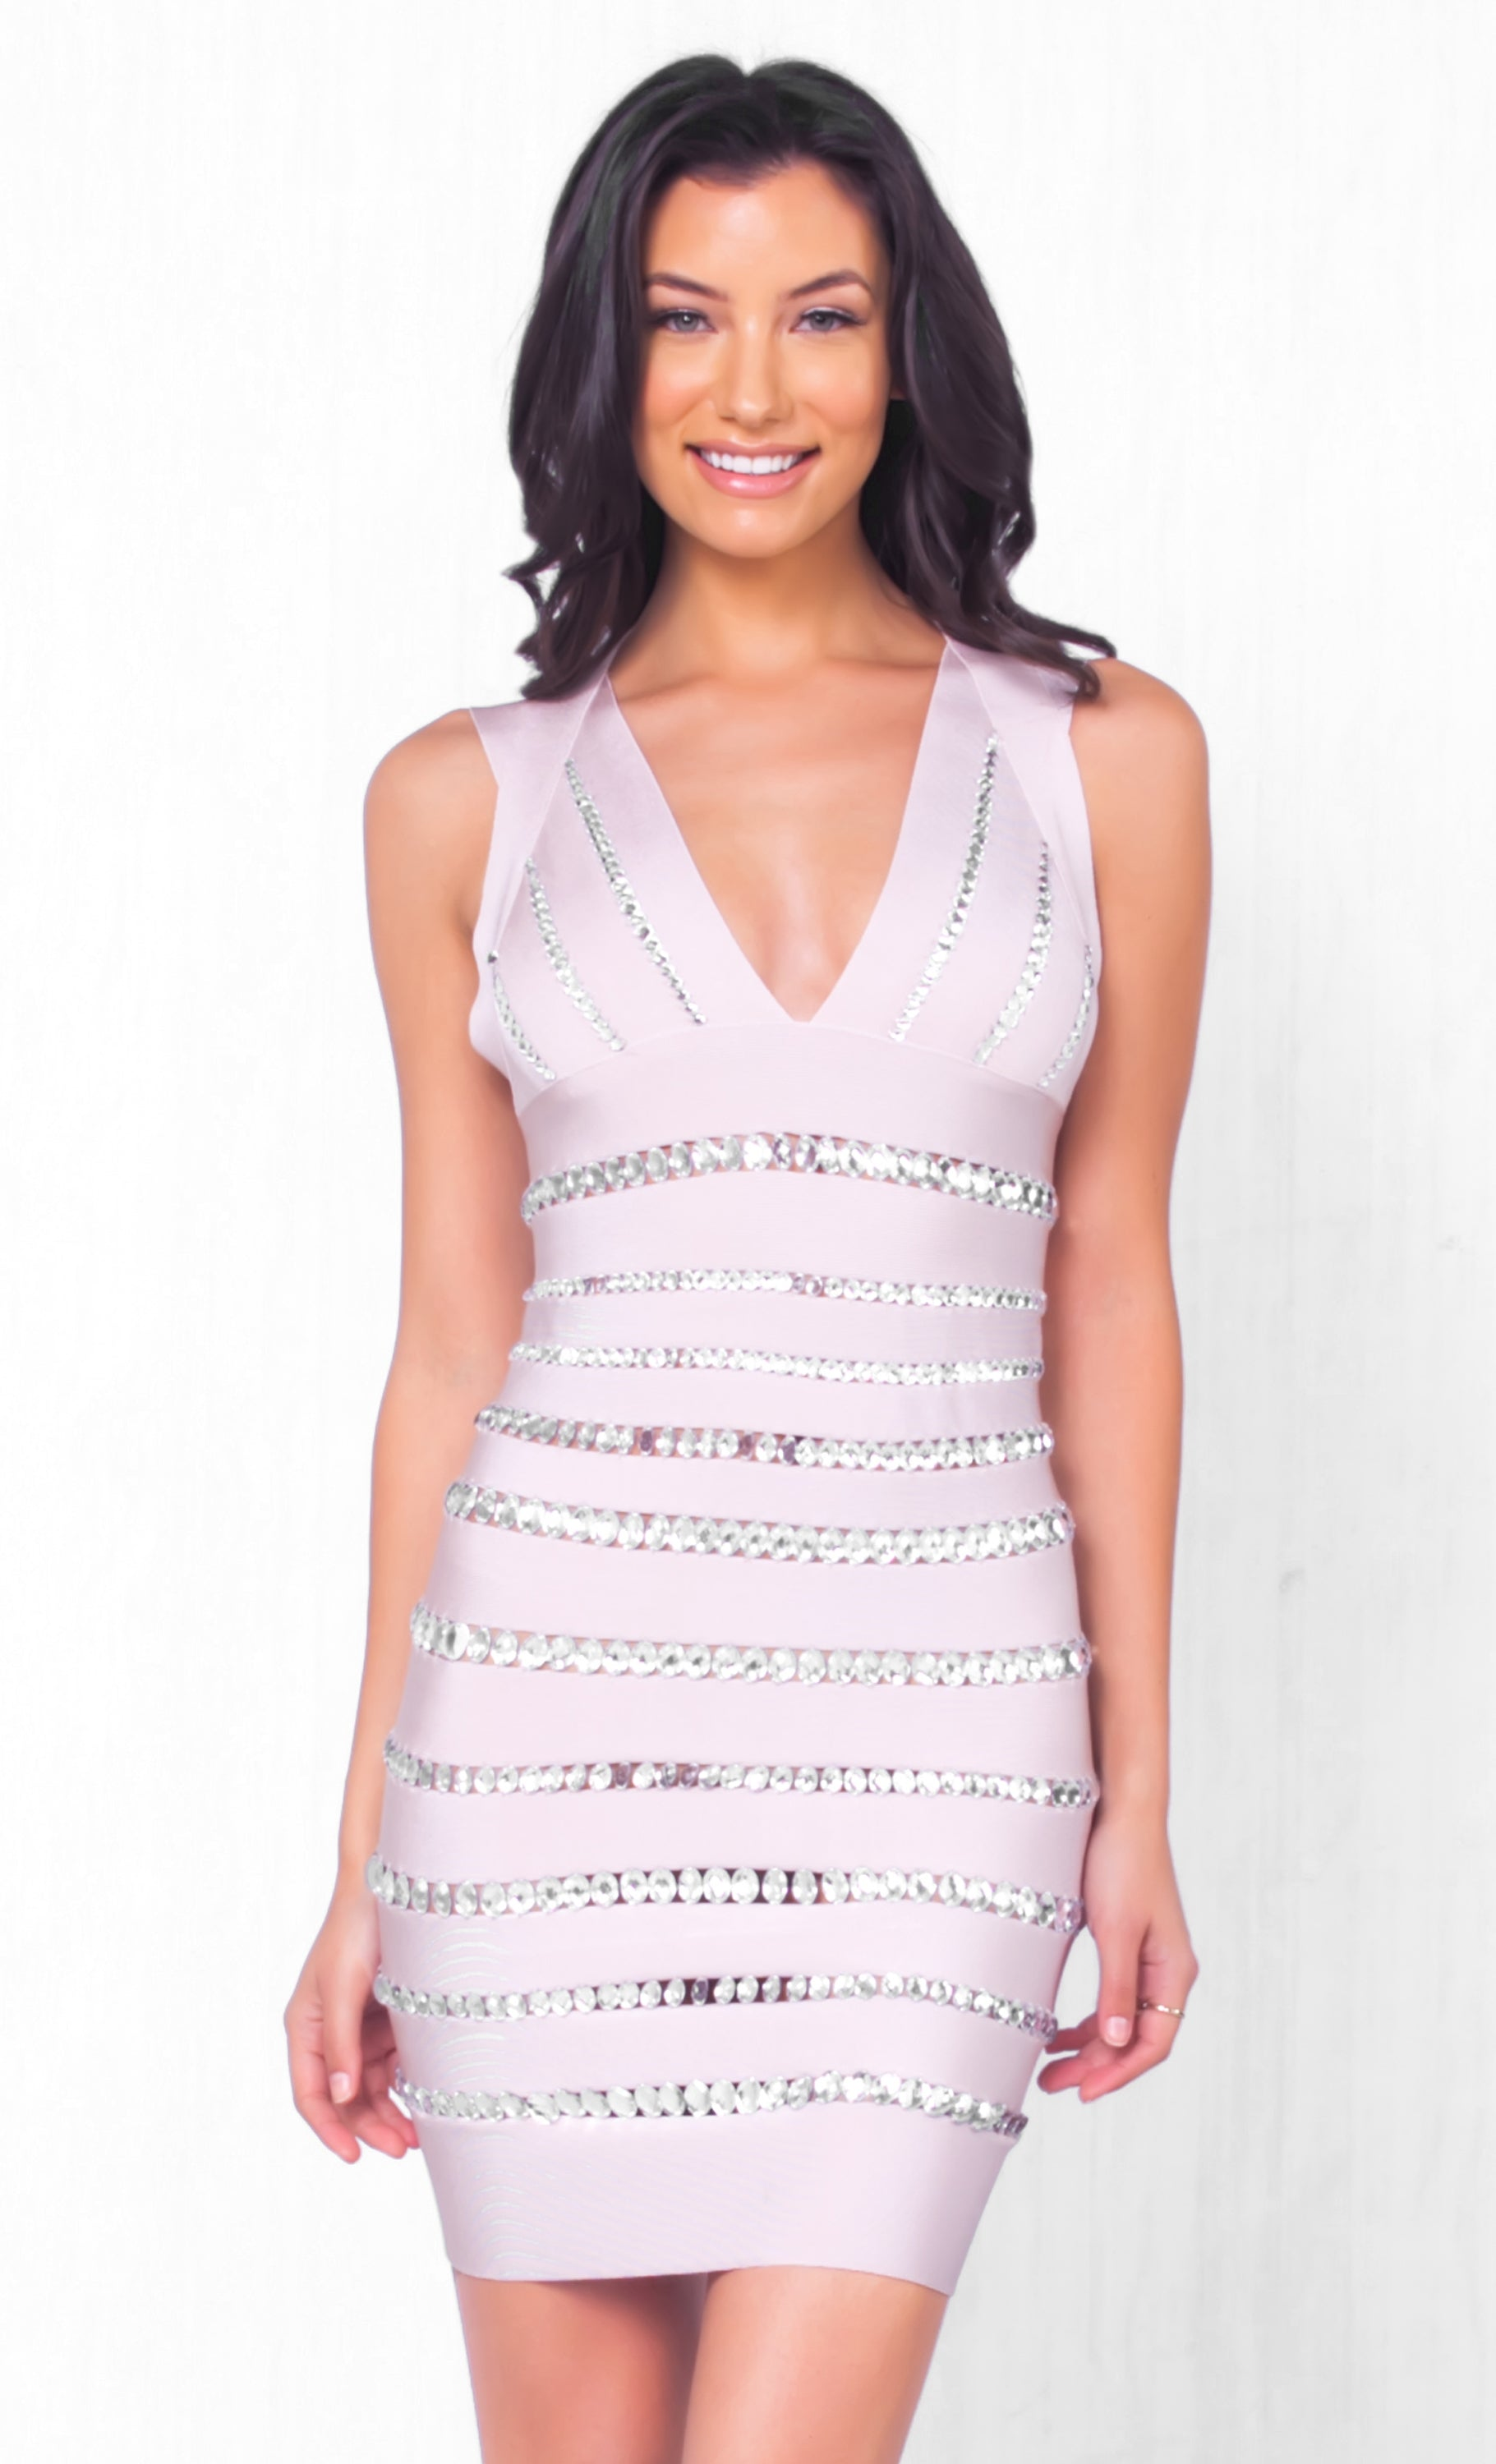 Indie XO Glamorous Magic Pink Beige Sleeveless V-Neck Embellished Rhinestone Crystal Bandage Bodycon Mini Dress - Just Ours! - Sold Out